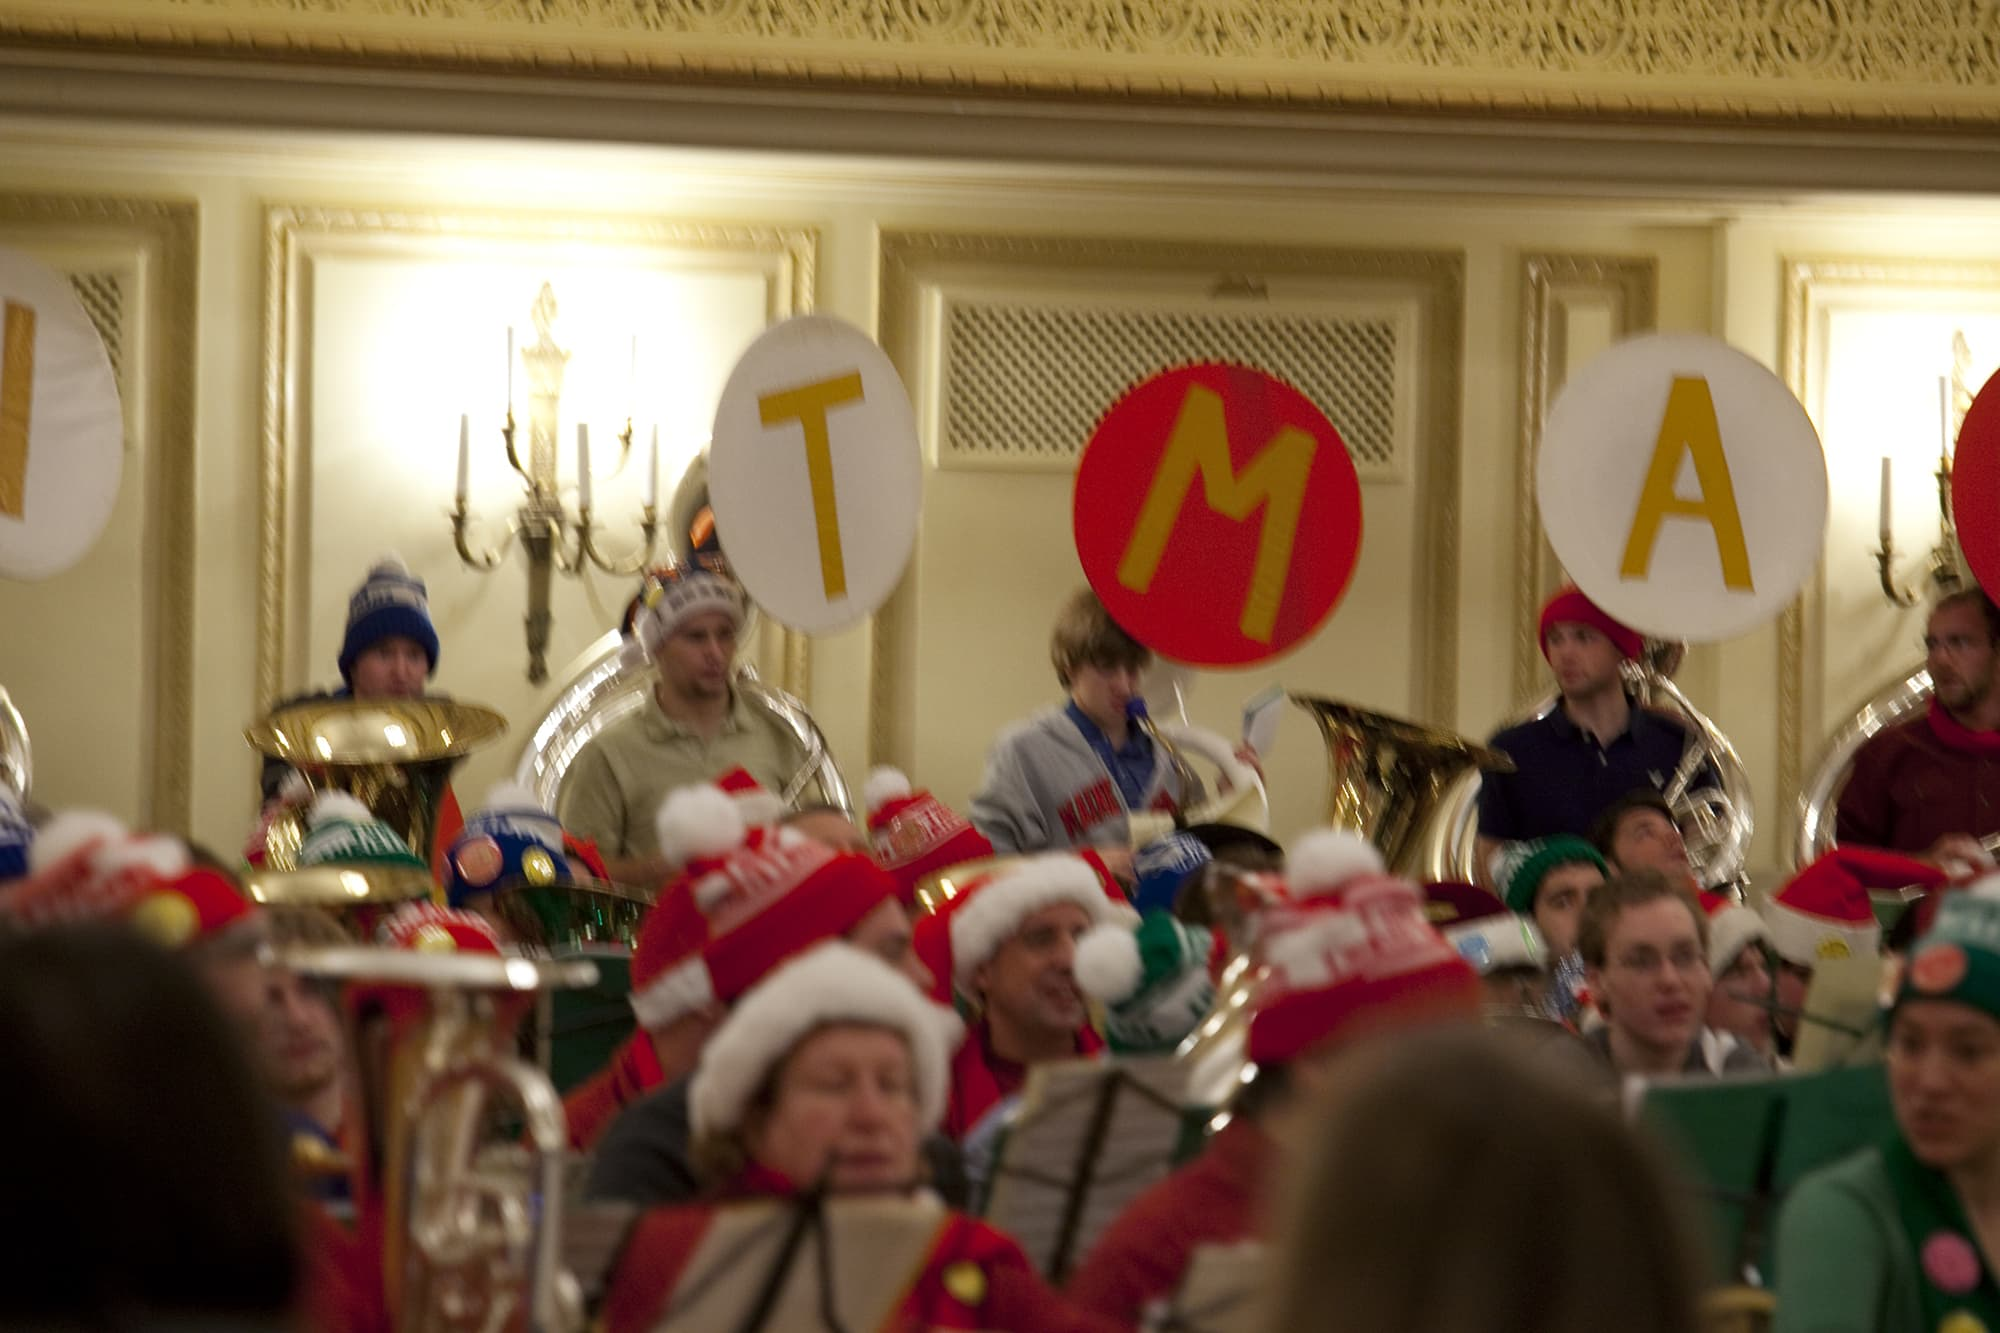 Tubachristmas in Chicago